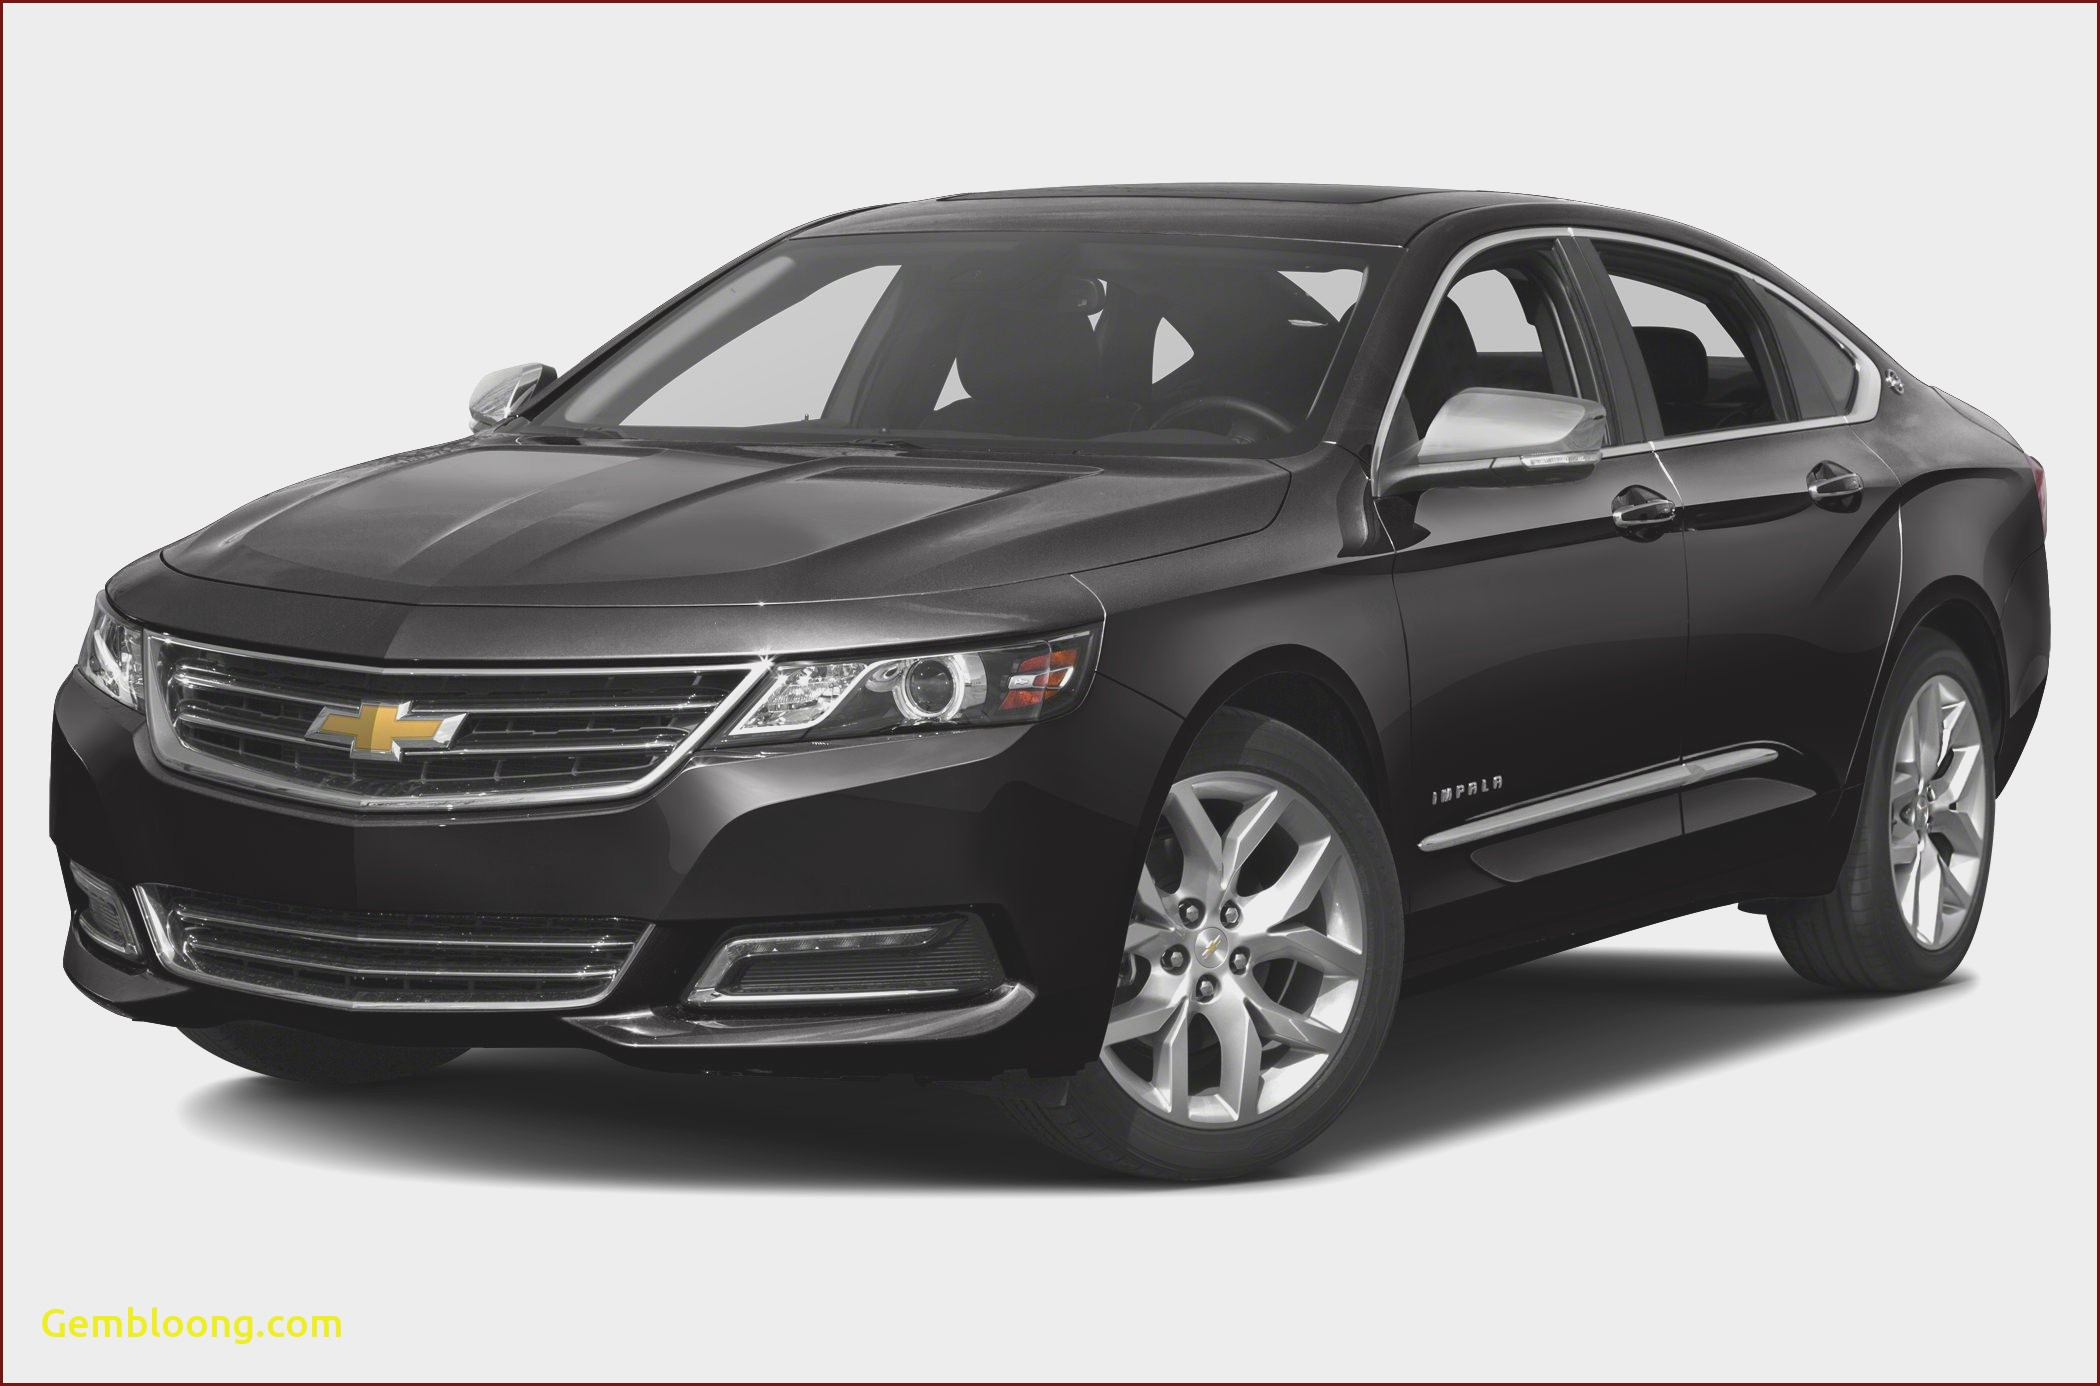 2014 chevrolet impala owners manual pdf of 2014 chevrolet impala owners manual pdf